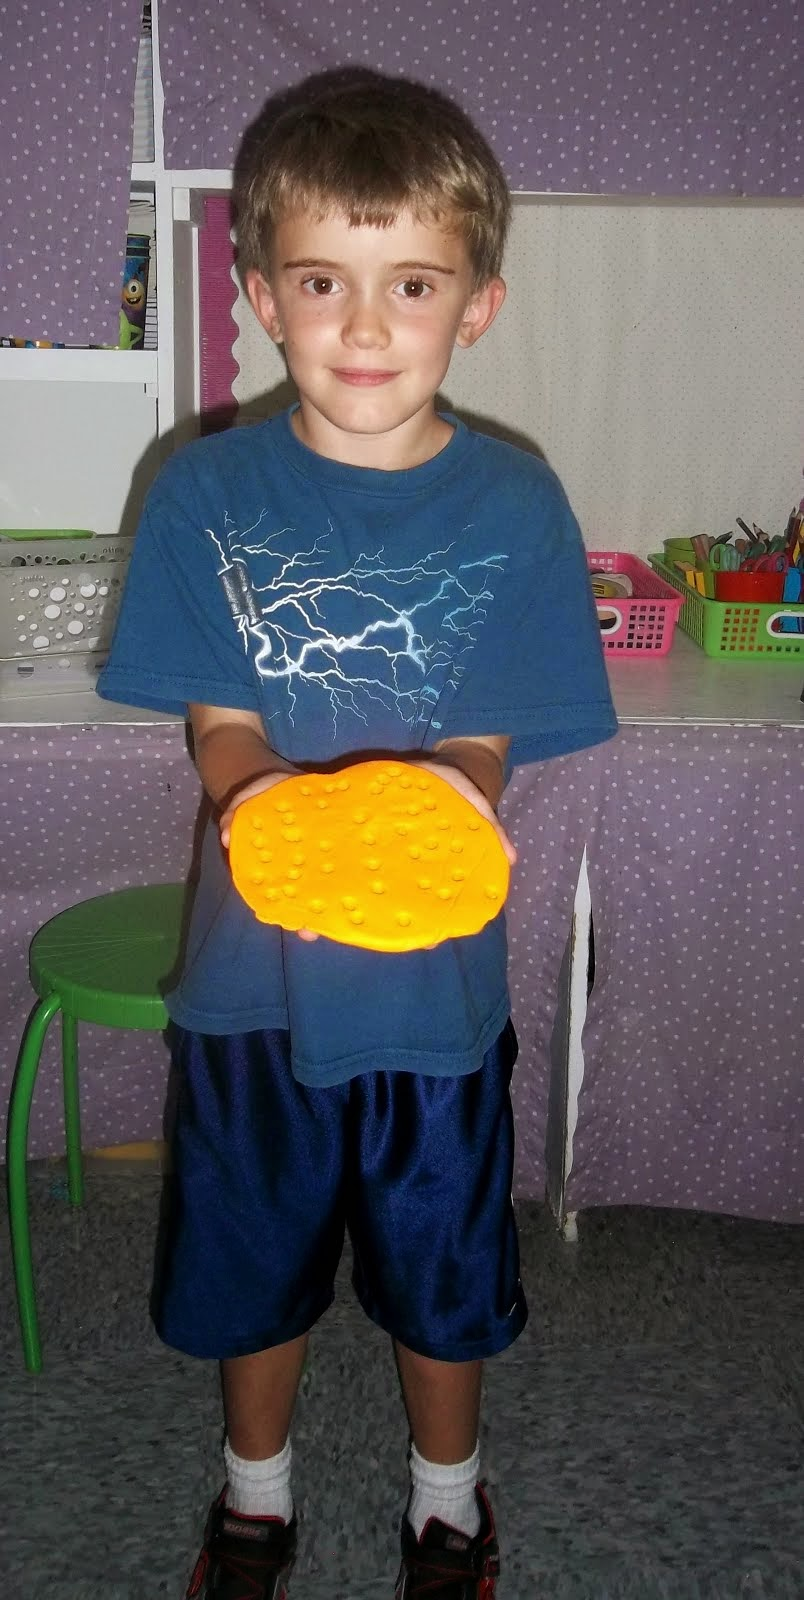 Jonas creating with the play dough